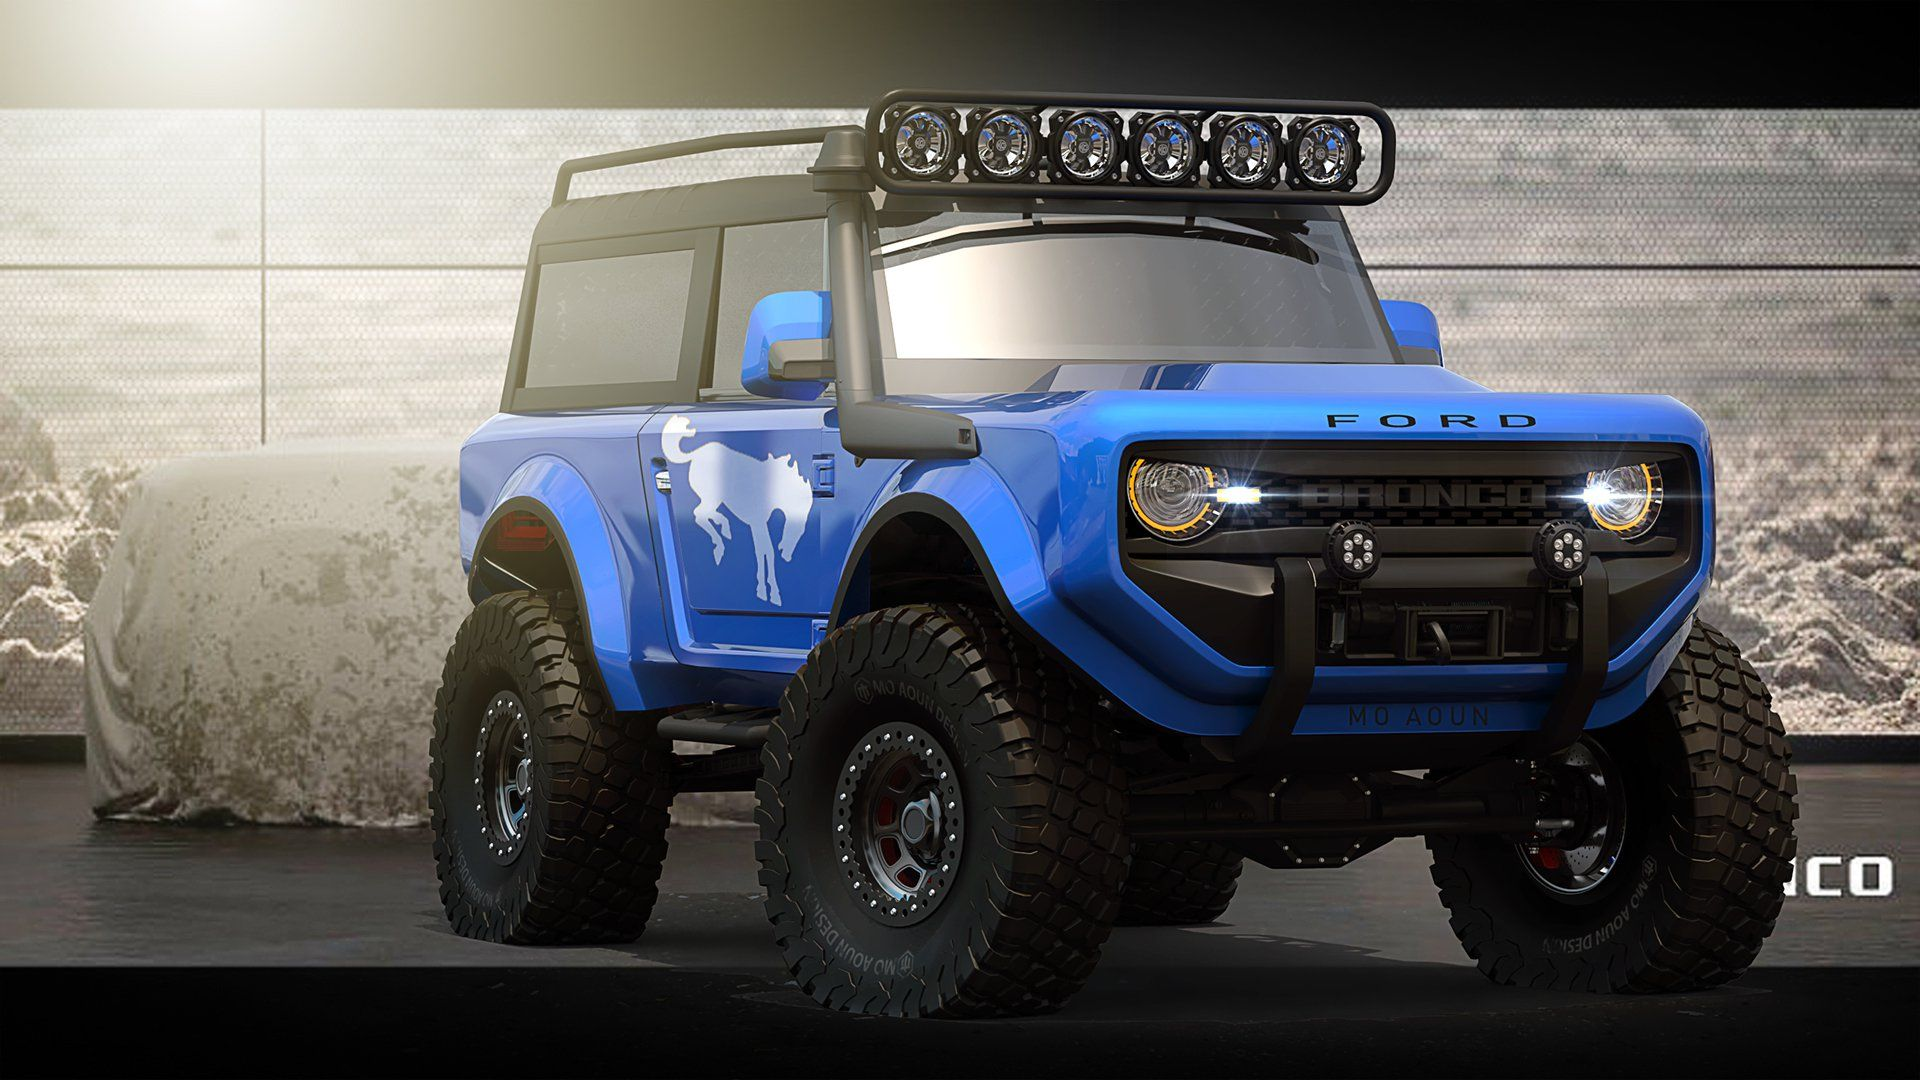 2021 Ford Bronco Hybrid Is Coming Ford Bronco Concept Ford Bronco Bronco Concept